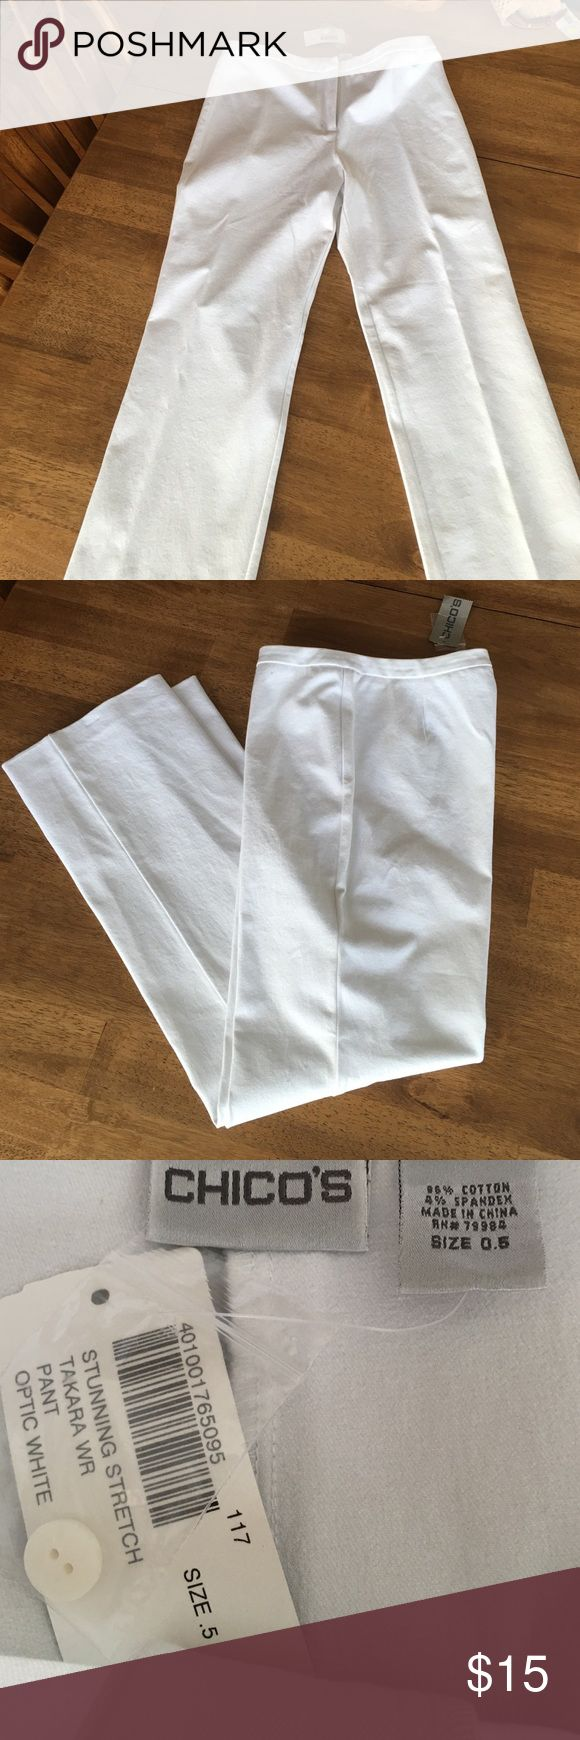 Chico's optic  white heavy cotton and spandex pant Chico's optic white, stunning stretch Takara straight leg pant. Size 0.5. Never worn. Excellent condition. chicos Pants Straight Leg